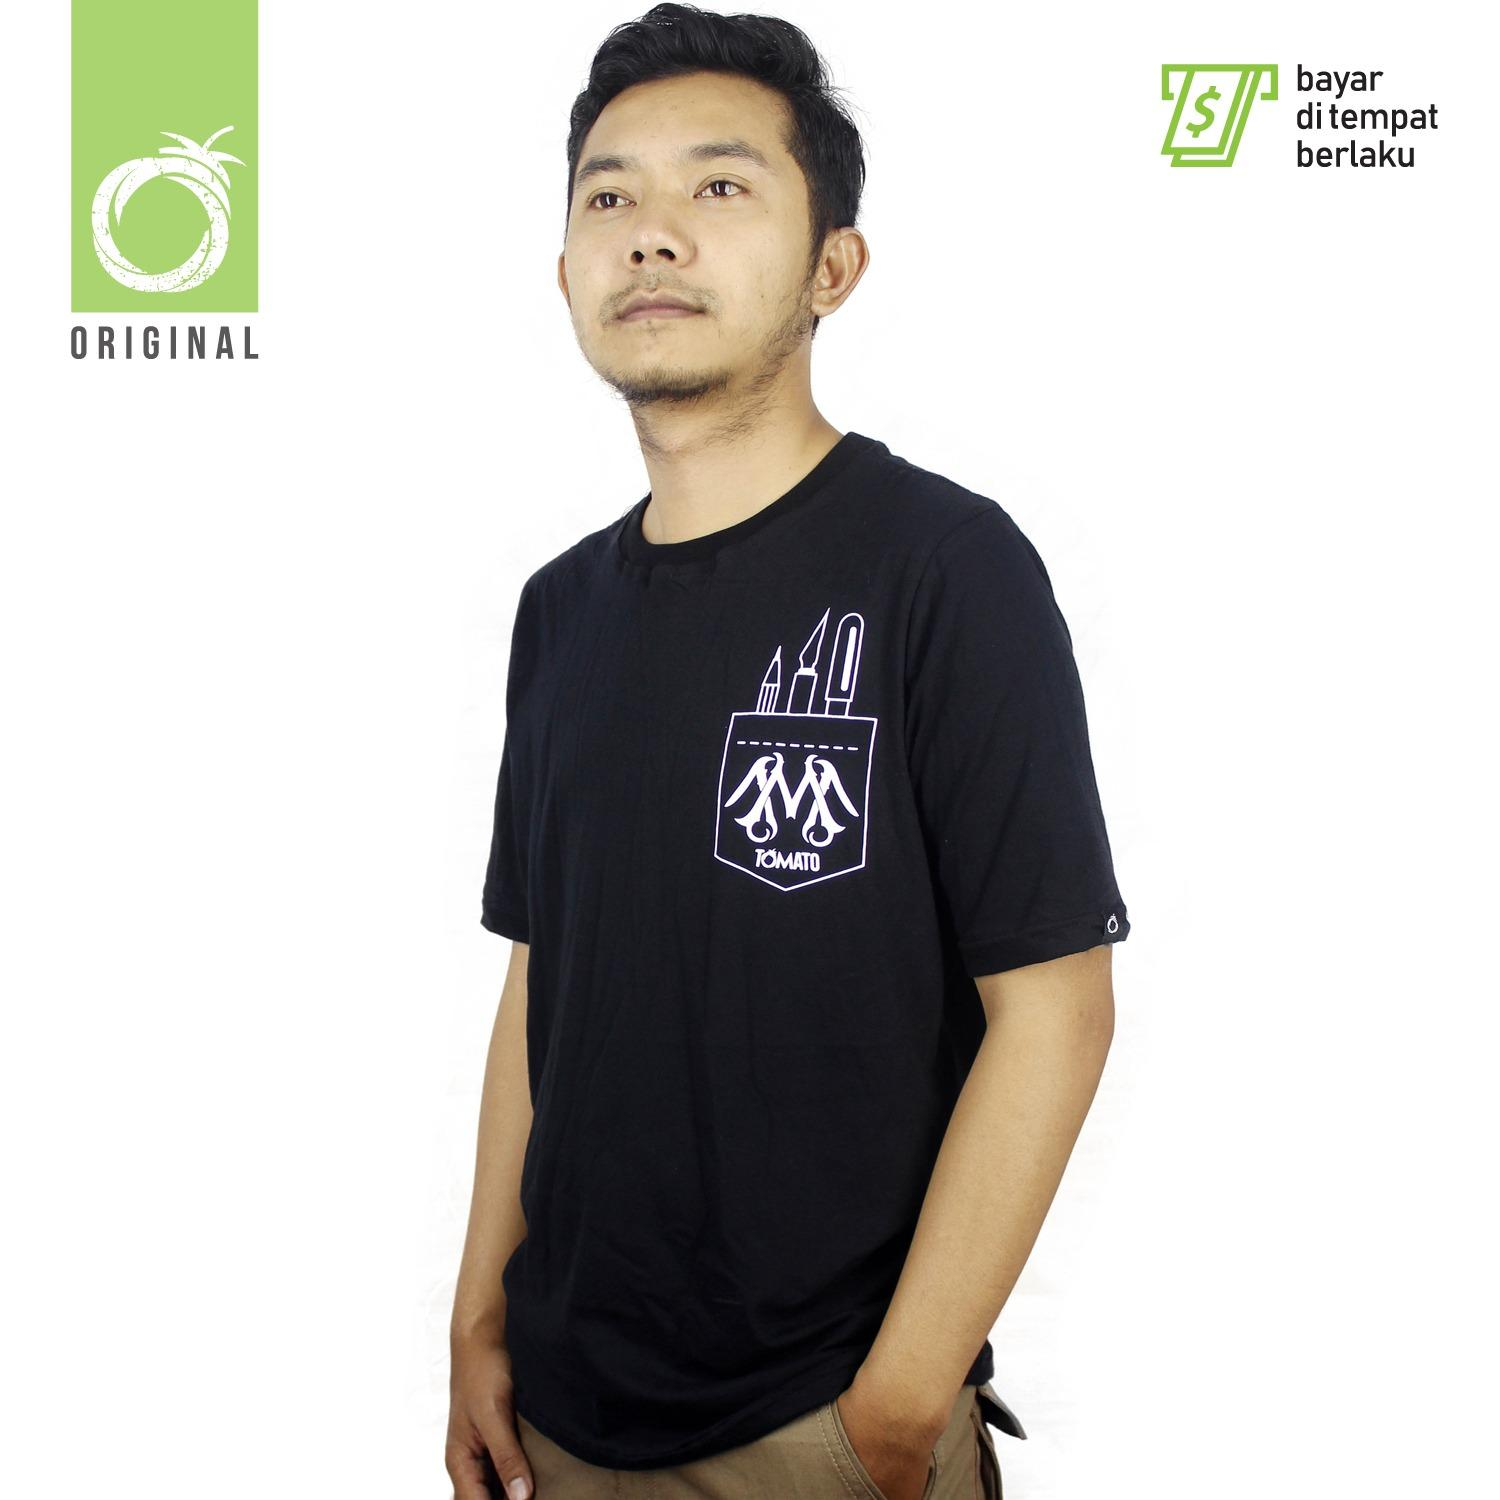 Review Tomato Clothing Original Kaos Pria Pocket Logo Hitam Terbaru